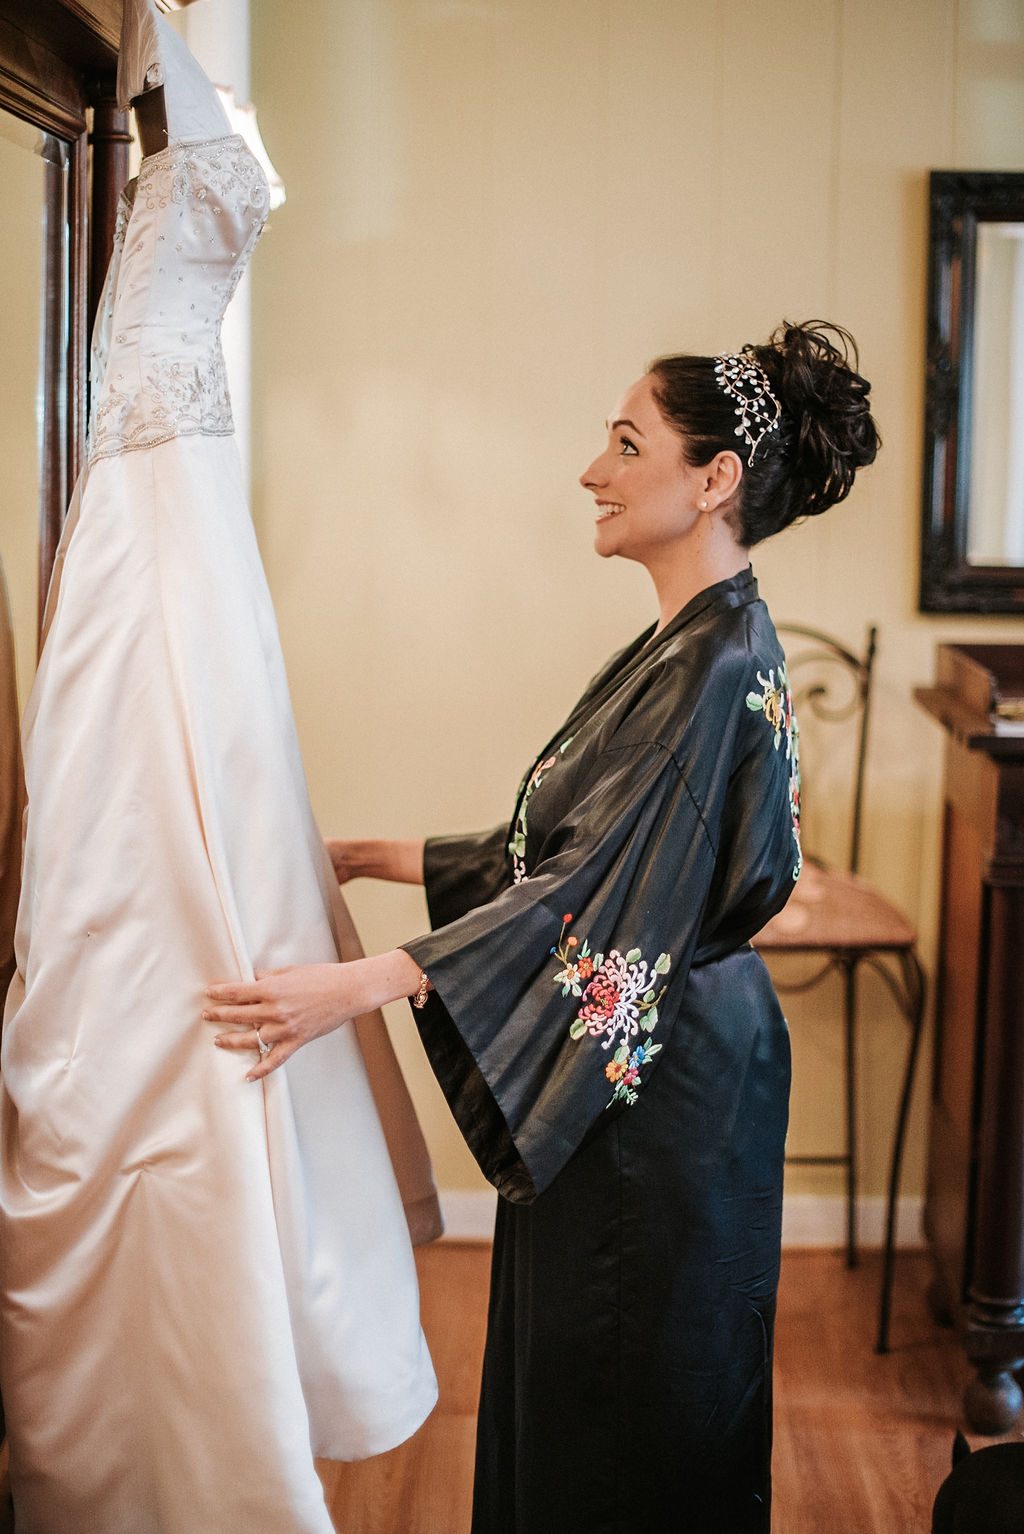 Bride admiring her dress at Inn at the Old Silk Mill